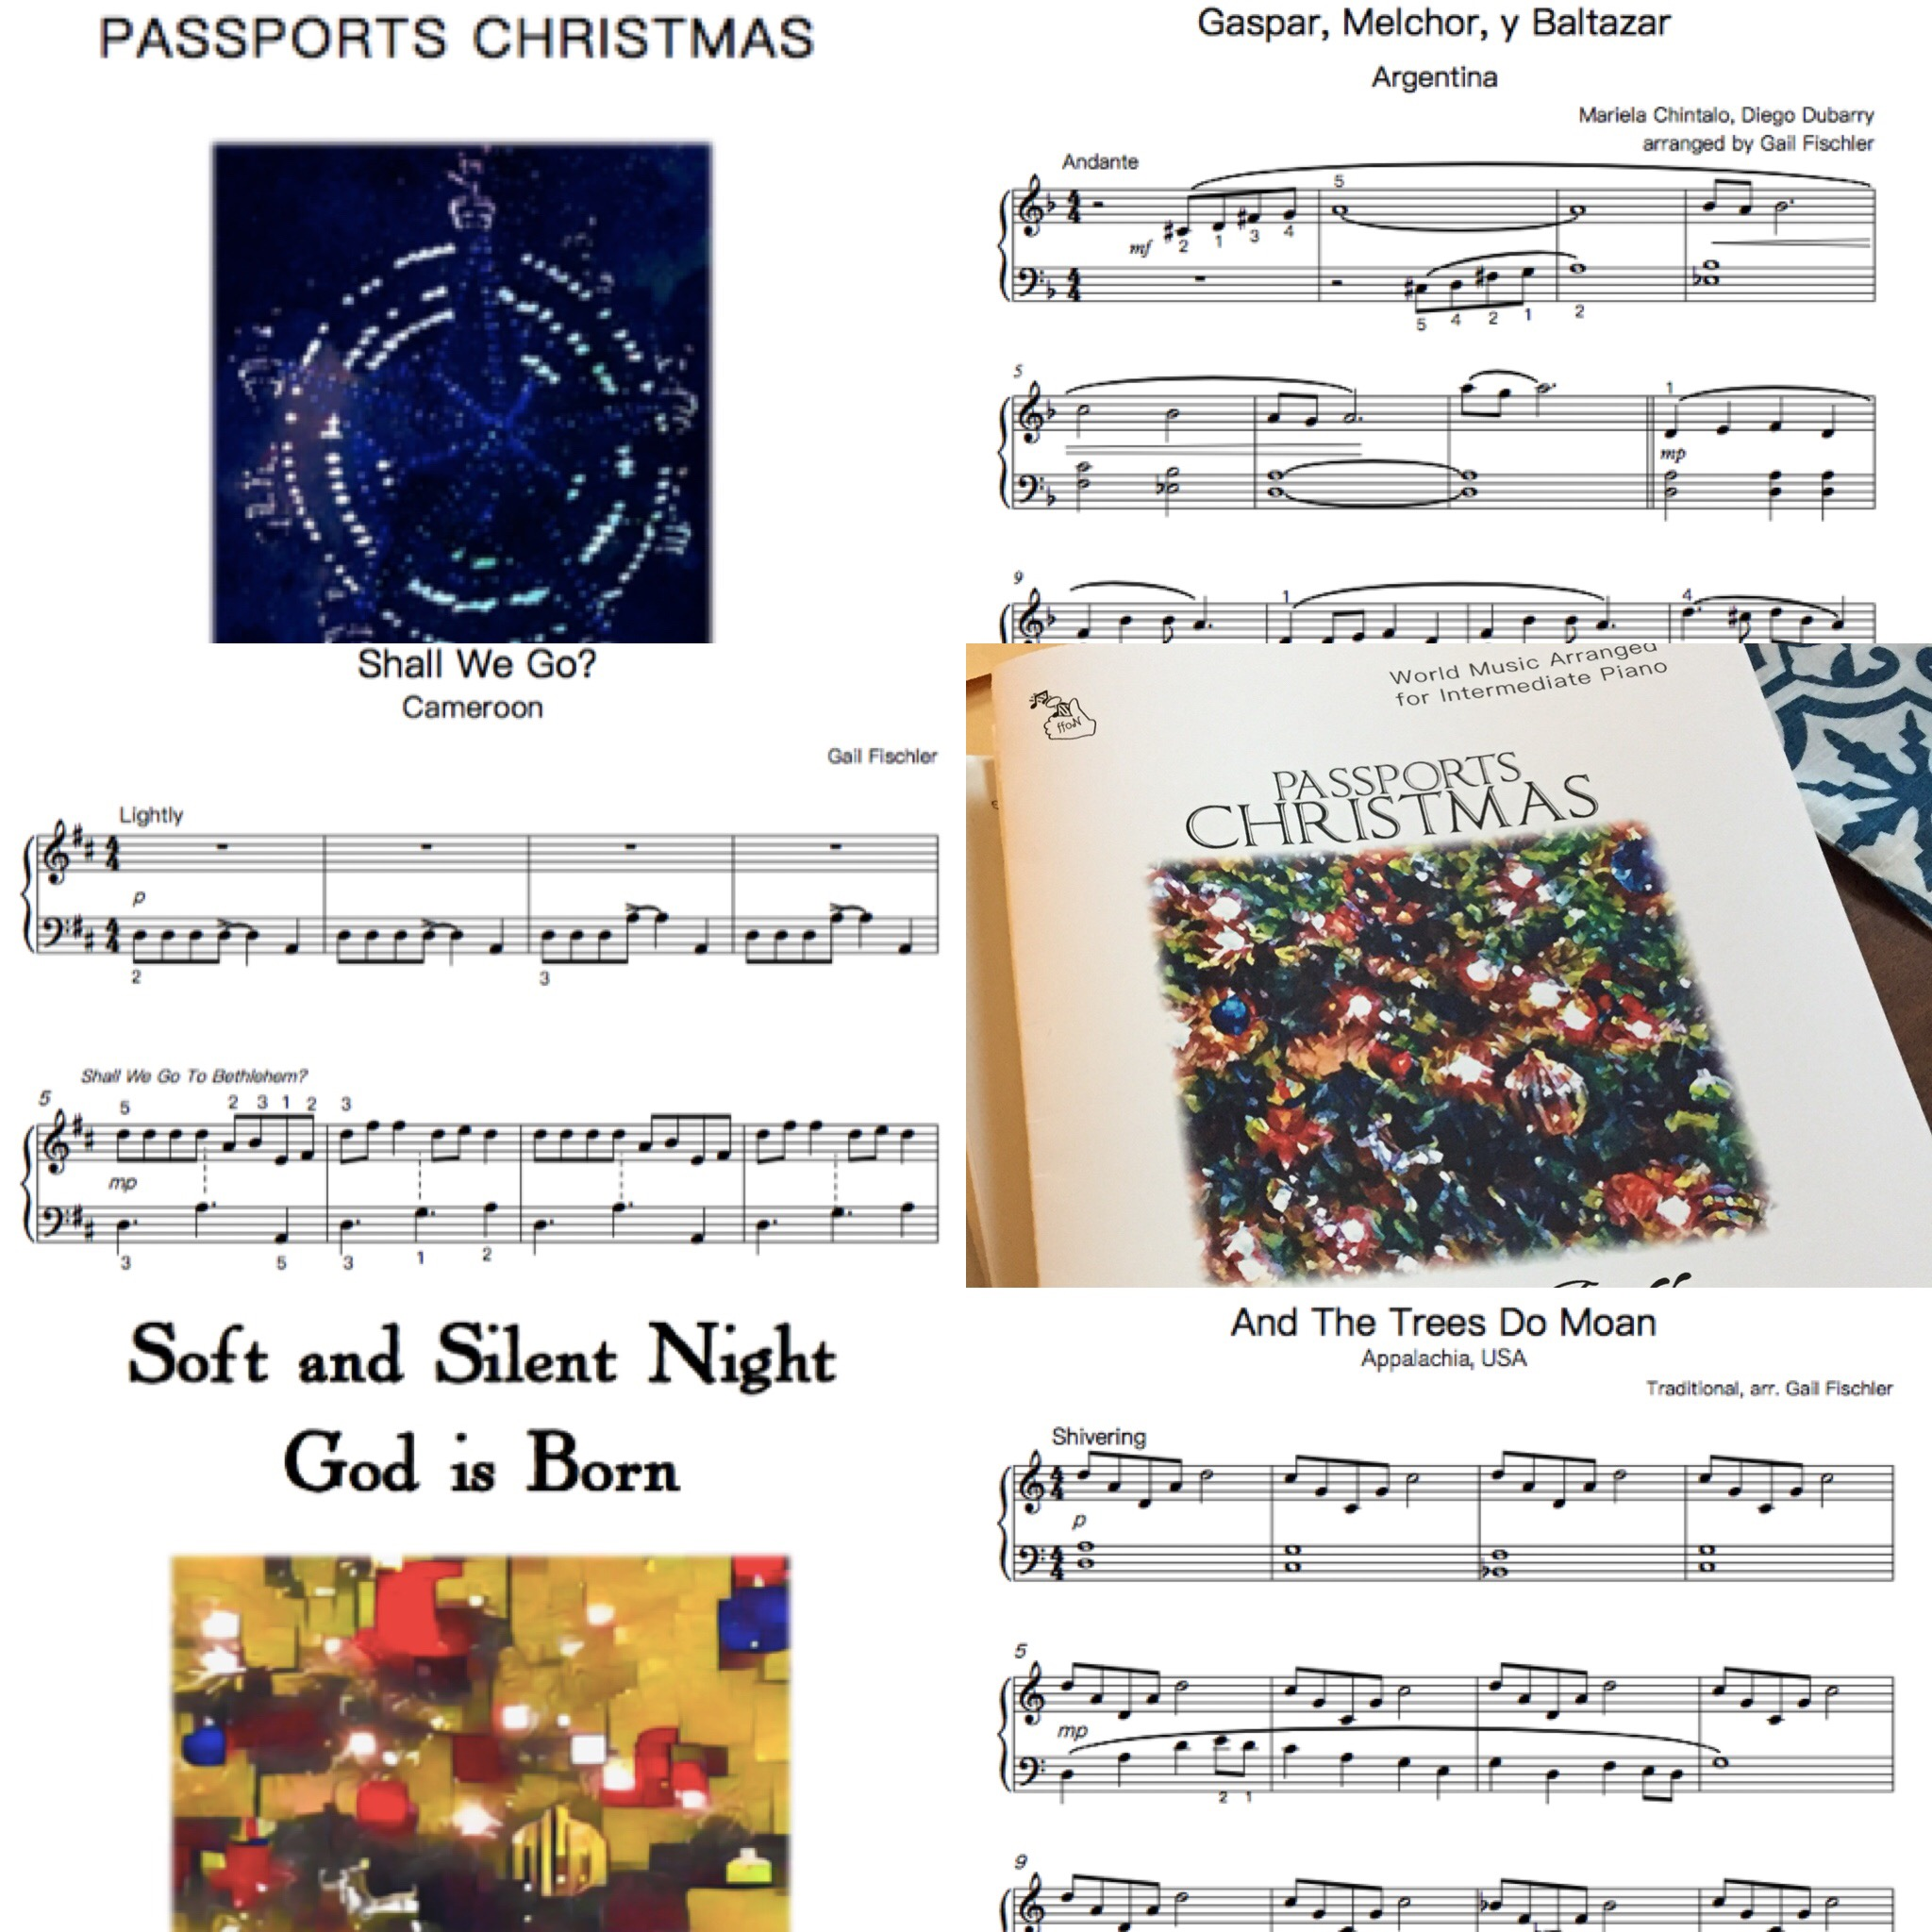 My World Christmas Arrangements: New this season: Carols from Portugal, Cameroon, Argentina, & India